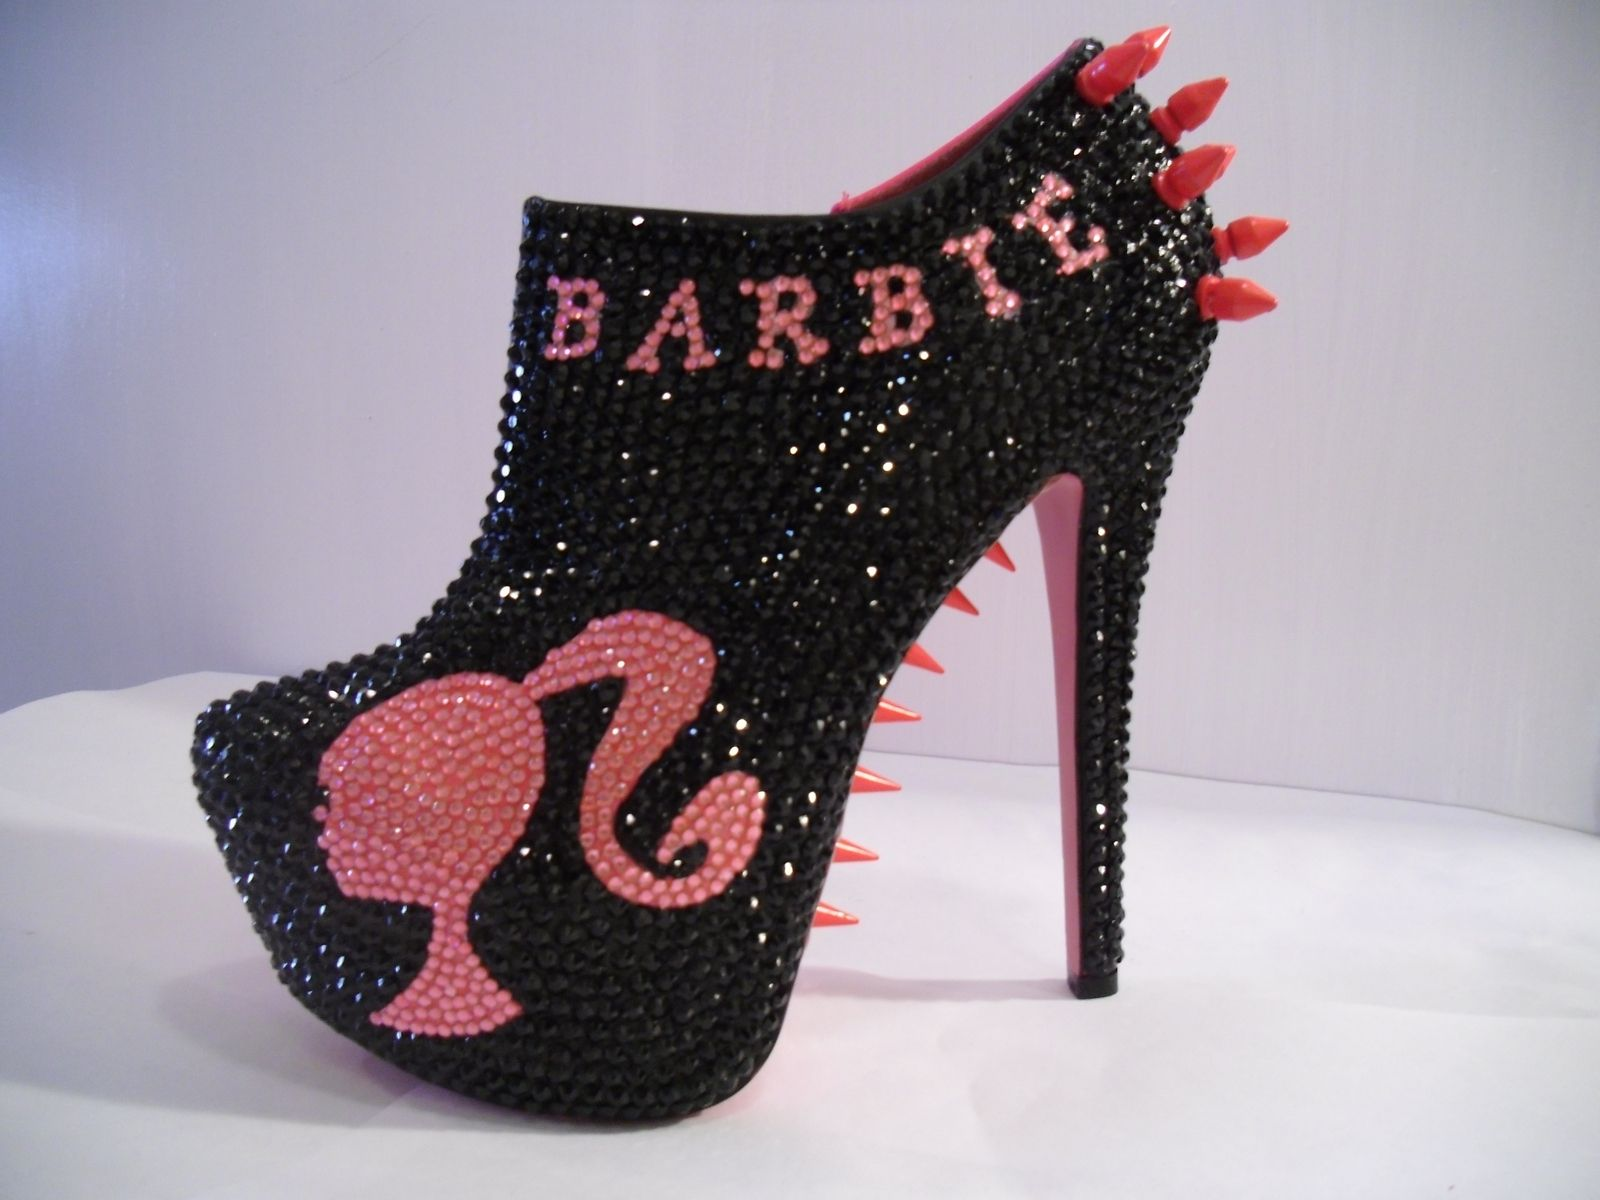 barbie boots for girls - photo #47